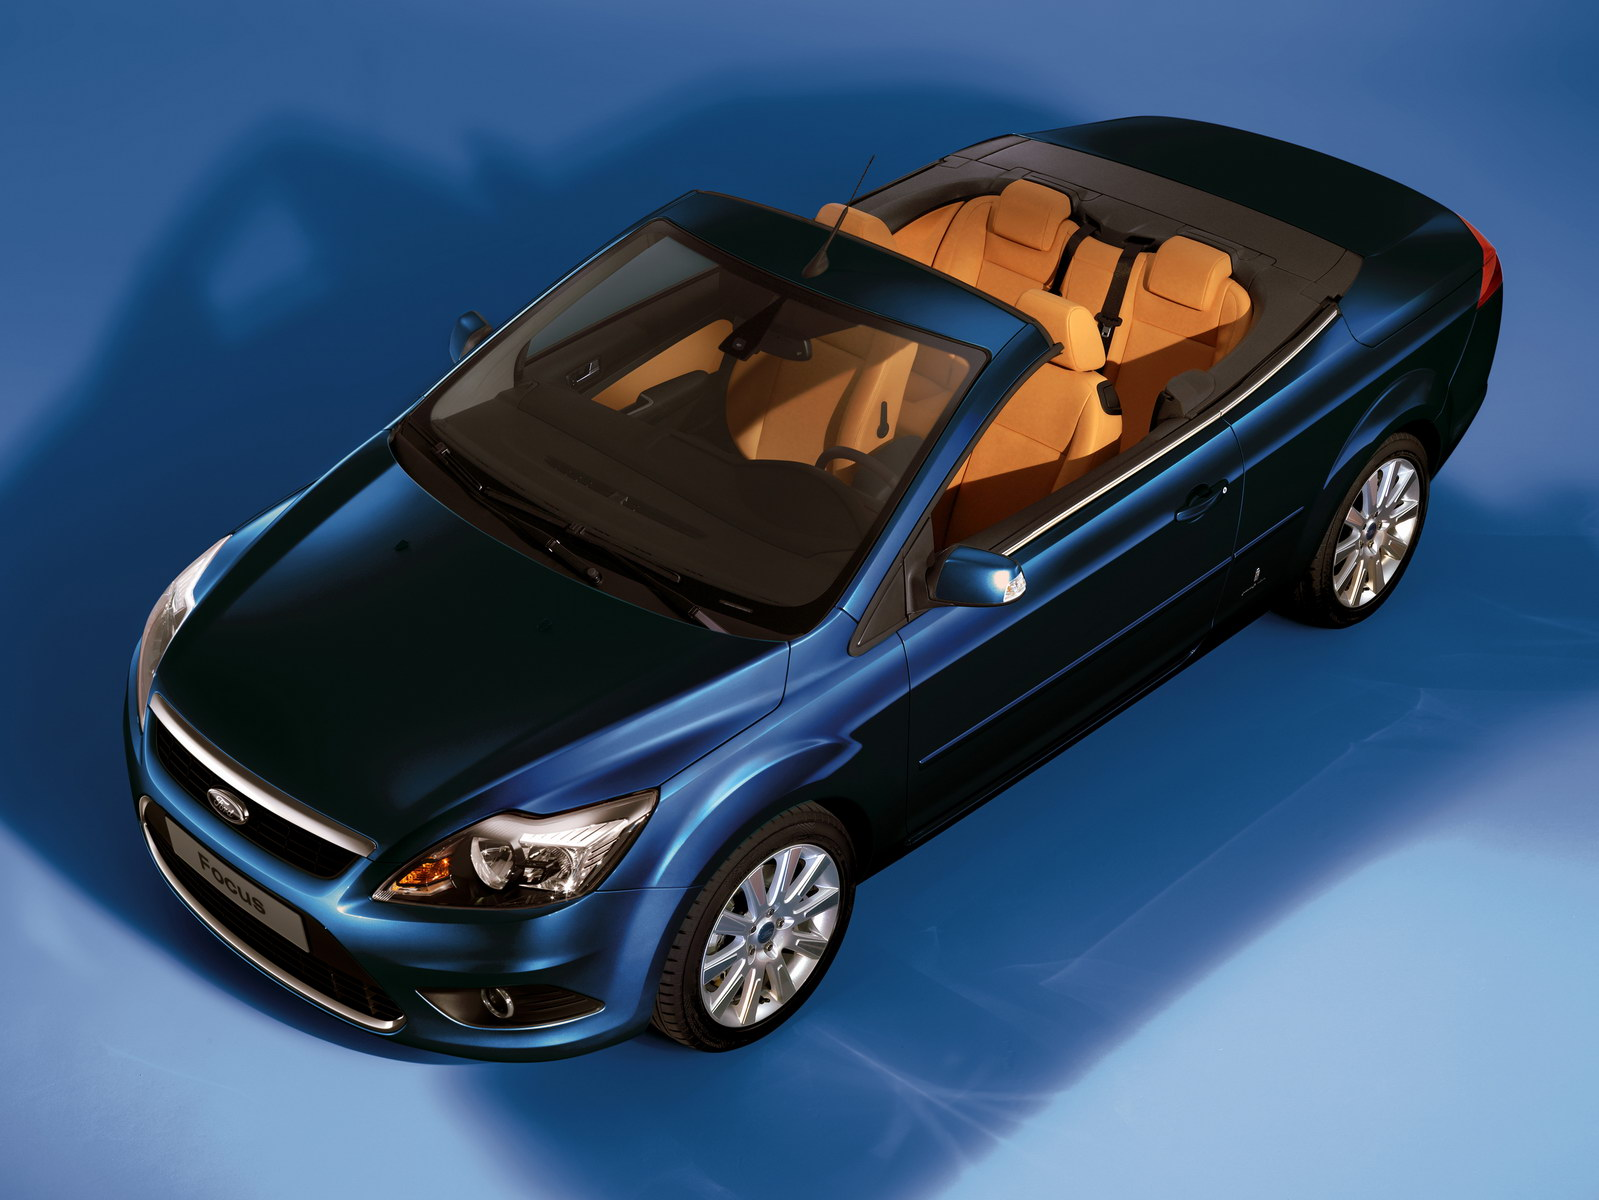 2008 Ford Focus Coupe Cabriolet photo - 3